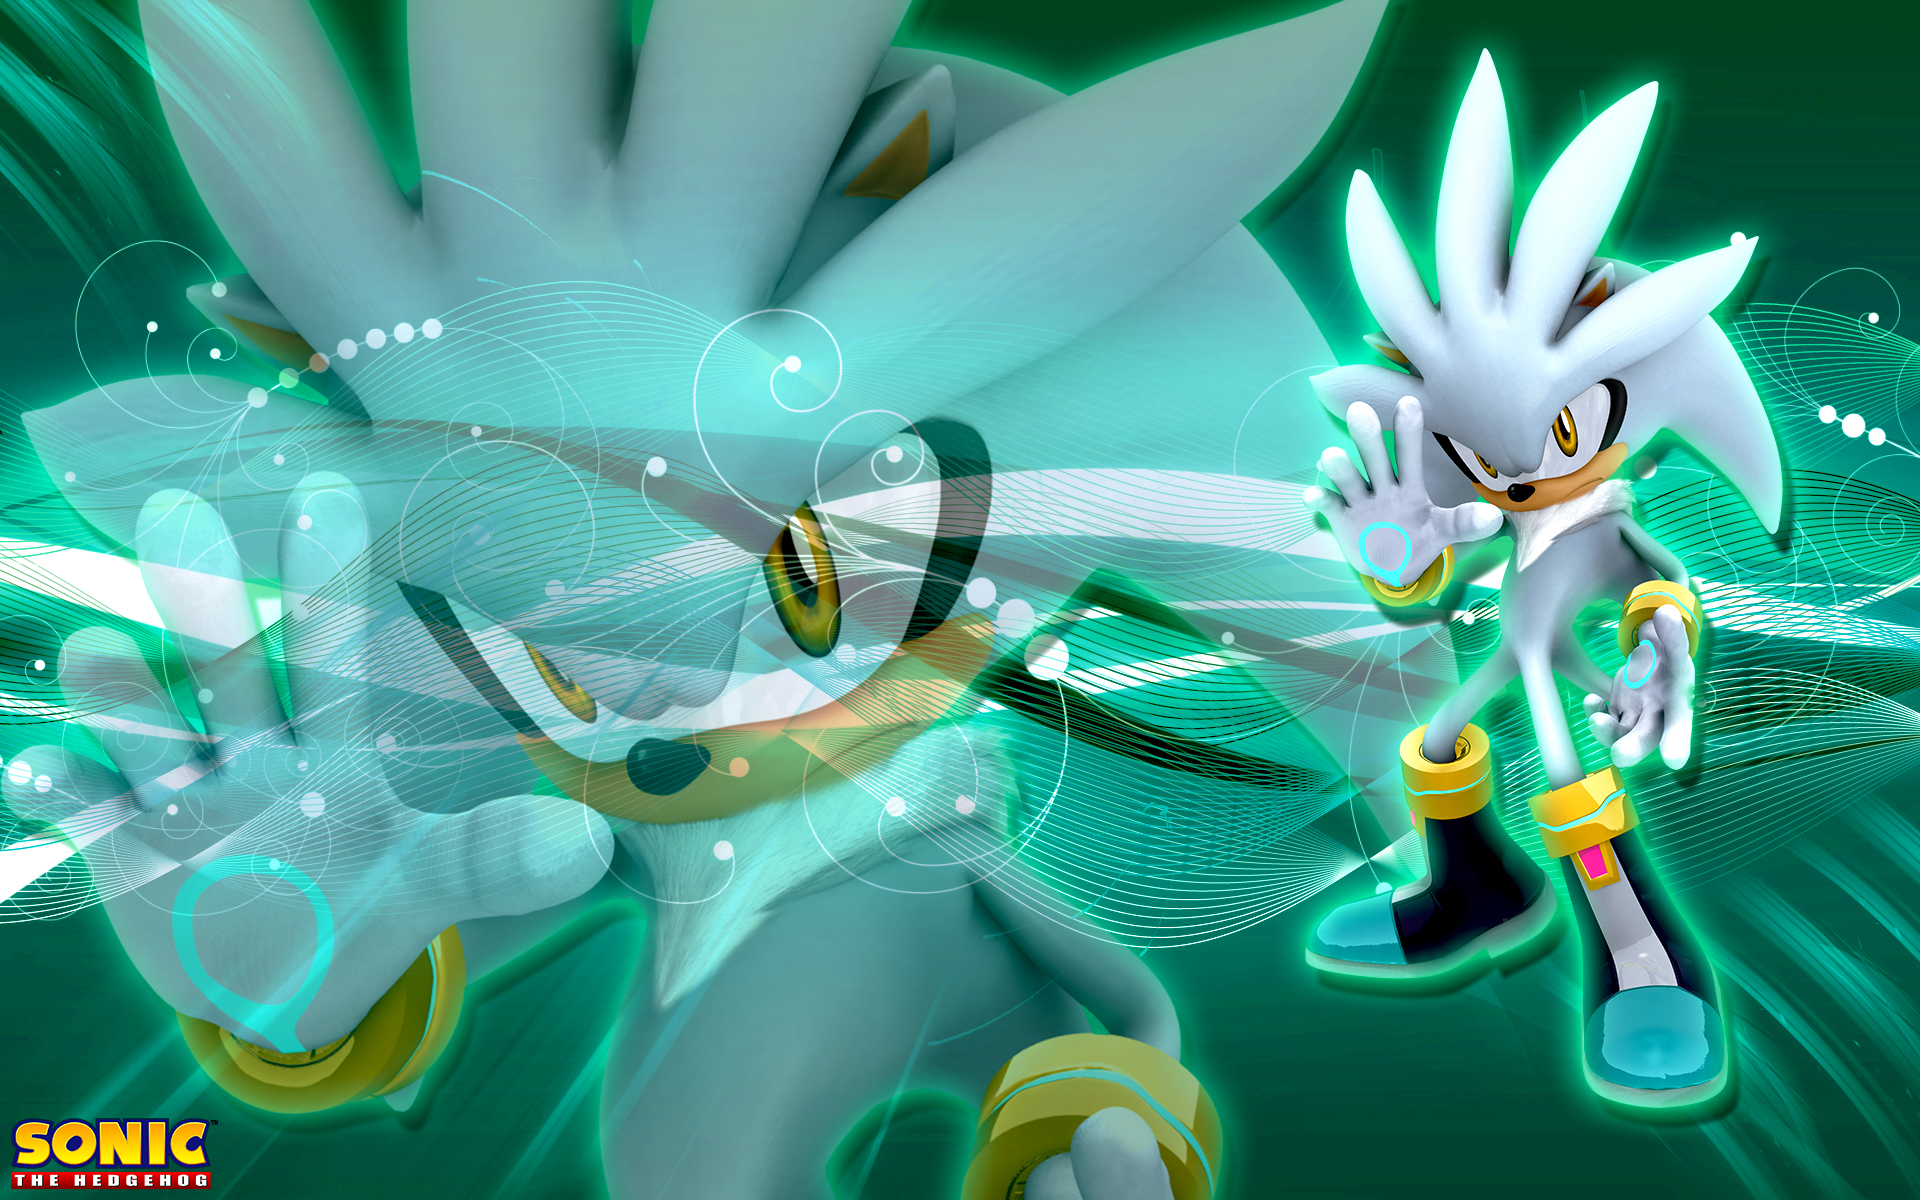 Best 60 Silver The Hedgehog Wallpaper On Hipwallpaper Silver Wallpaper Black Silver Wallpaper And Blue Silver Wallpaper